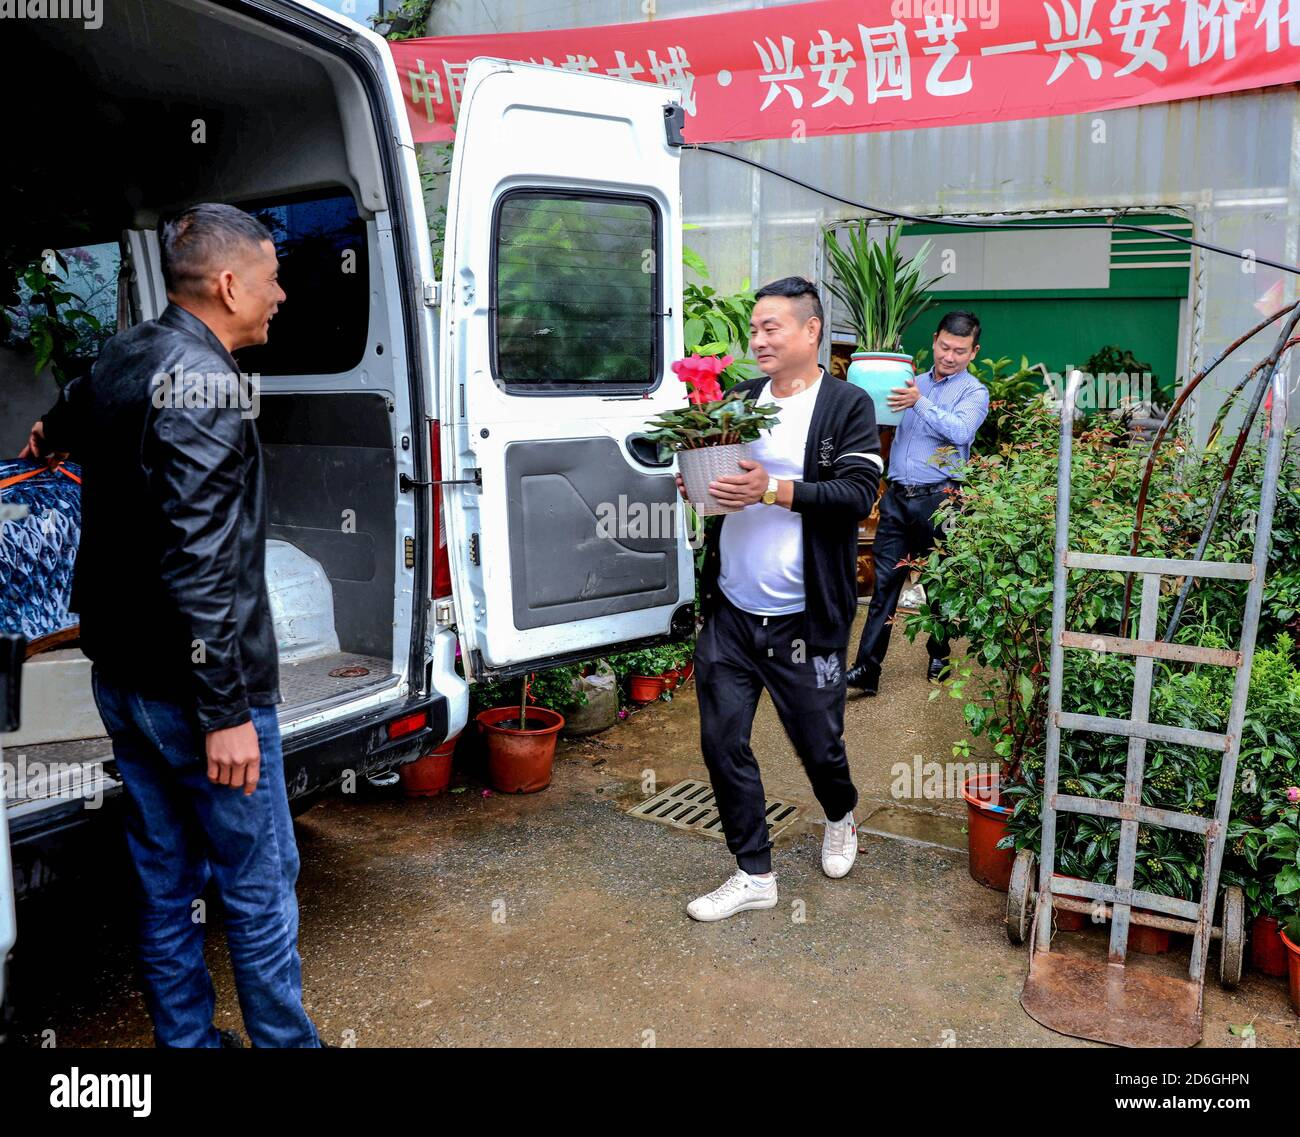 (201017) -- CHANGXING, Oct. 17, 2020 (Xinhua) -- Customers transfer newly-purchased flowers and seedlings onto a vehicle during the Changxing flower and tree fair in Sian Town of Changxing County, east China's Zhejiang Province, Oct. 16, 2020.  The Changxing flower and tree fair, exhibiting more than 1,000 species of flowers and trees, kicked off in Sian Town of Changxing on Friday. With the planting area of flowers and trees reaching 283,000 mu (about 18,867 hectares), the flower and tree business in Changxing has achieved a sales volume of nearly two billion yuan (about 298.6 million U.S. do Stock Photo